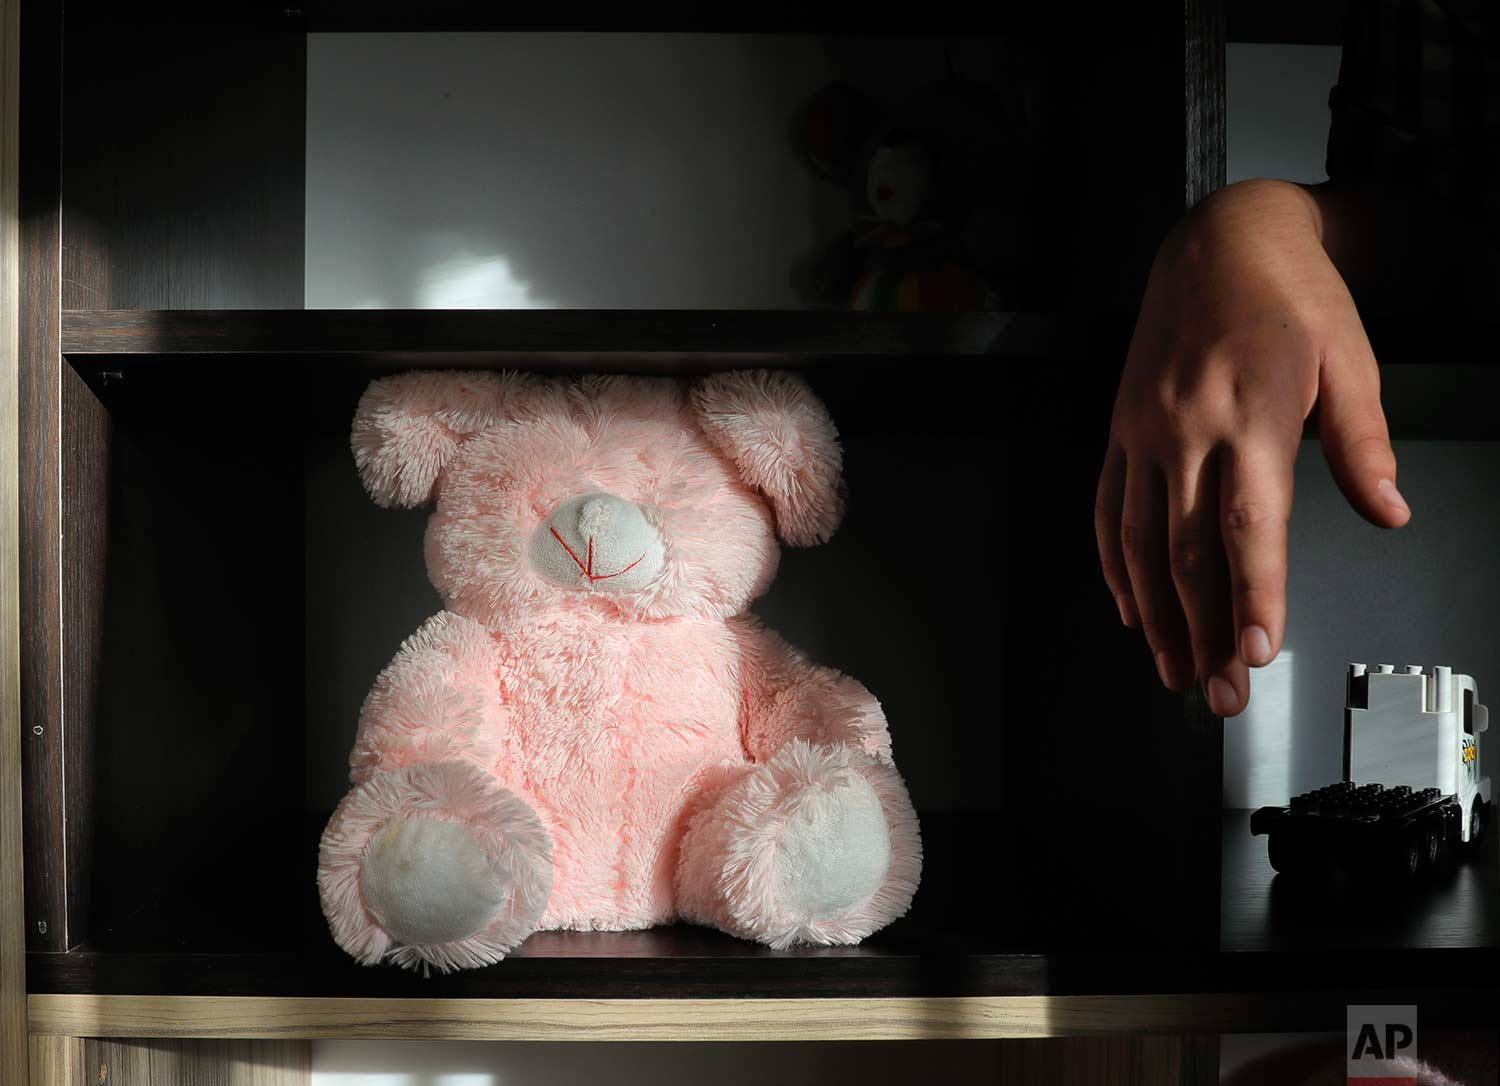 A boy stands next to a teddy bear missing its eyes at a foster home in Bucharest, Romania, on Wednesday, Nov. 1, 2017. (AP Photo/Vadim Ghirda)